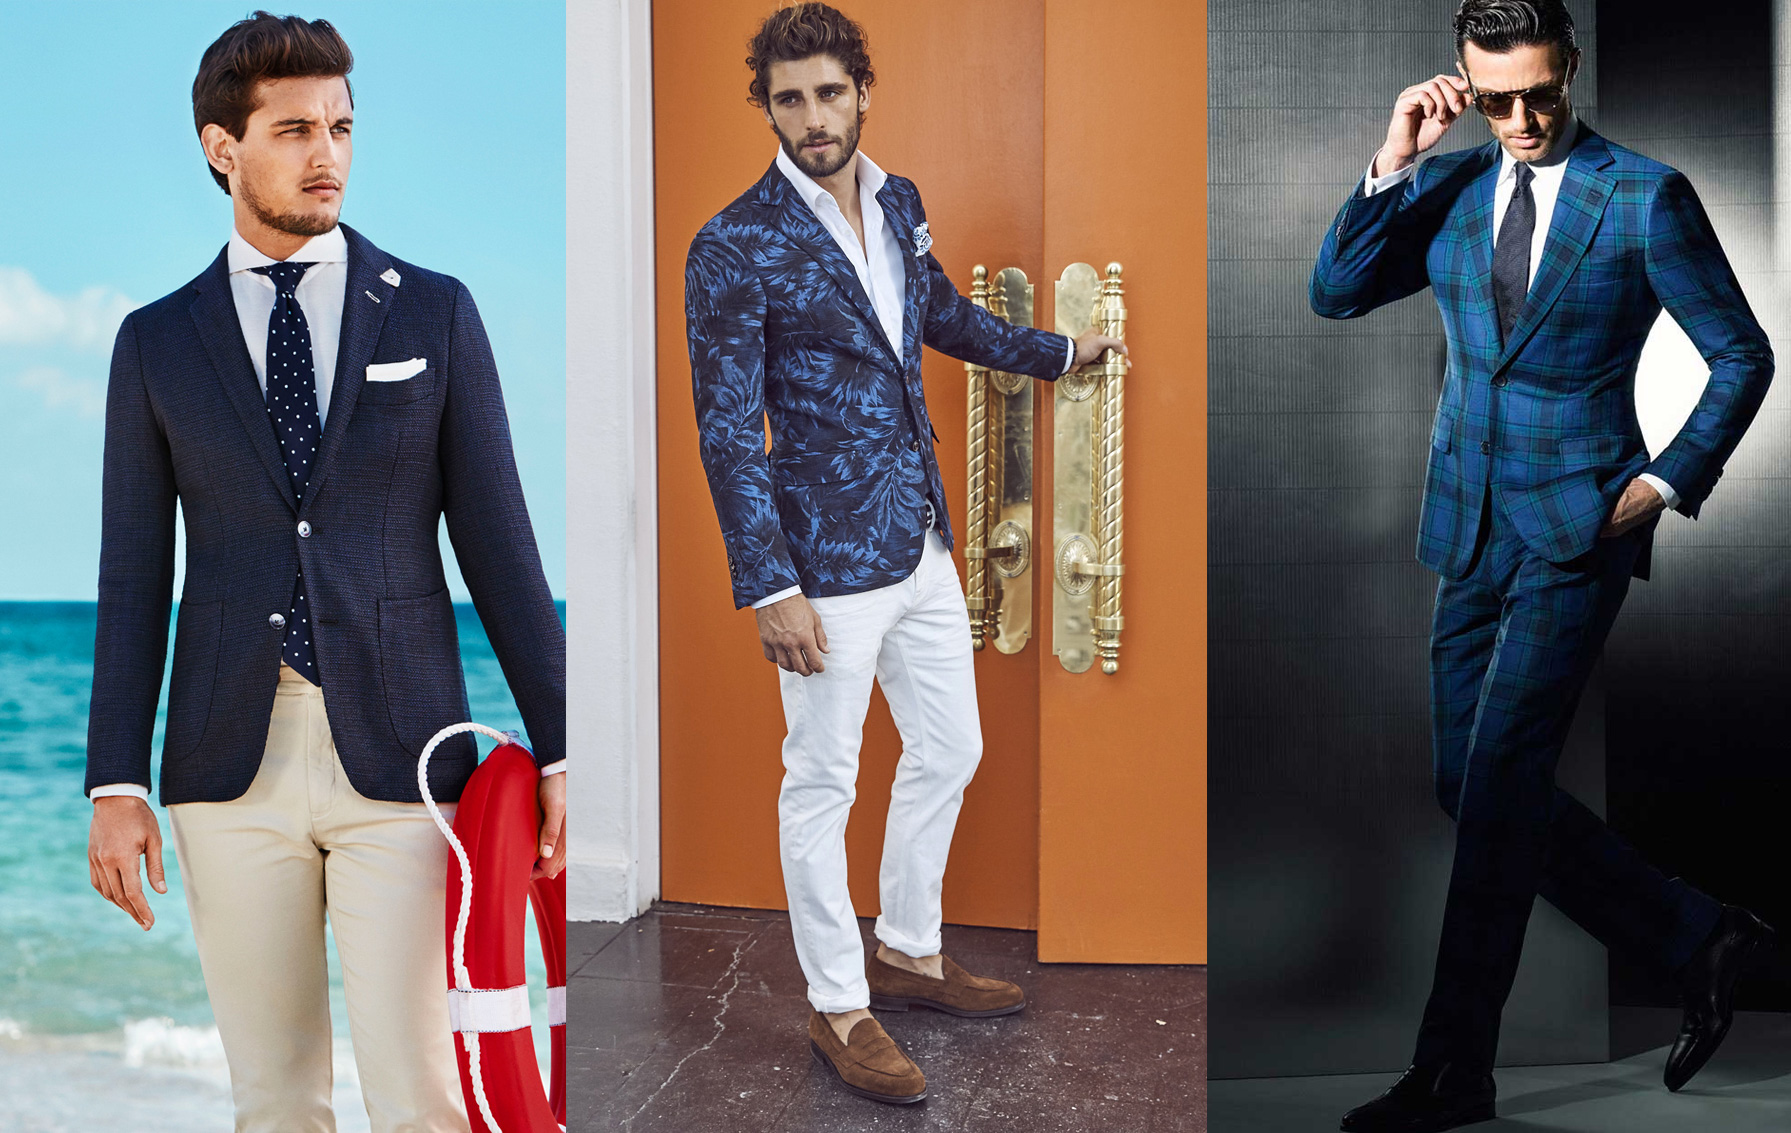 What To Wear To A Wedding The Modern Men S Guide